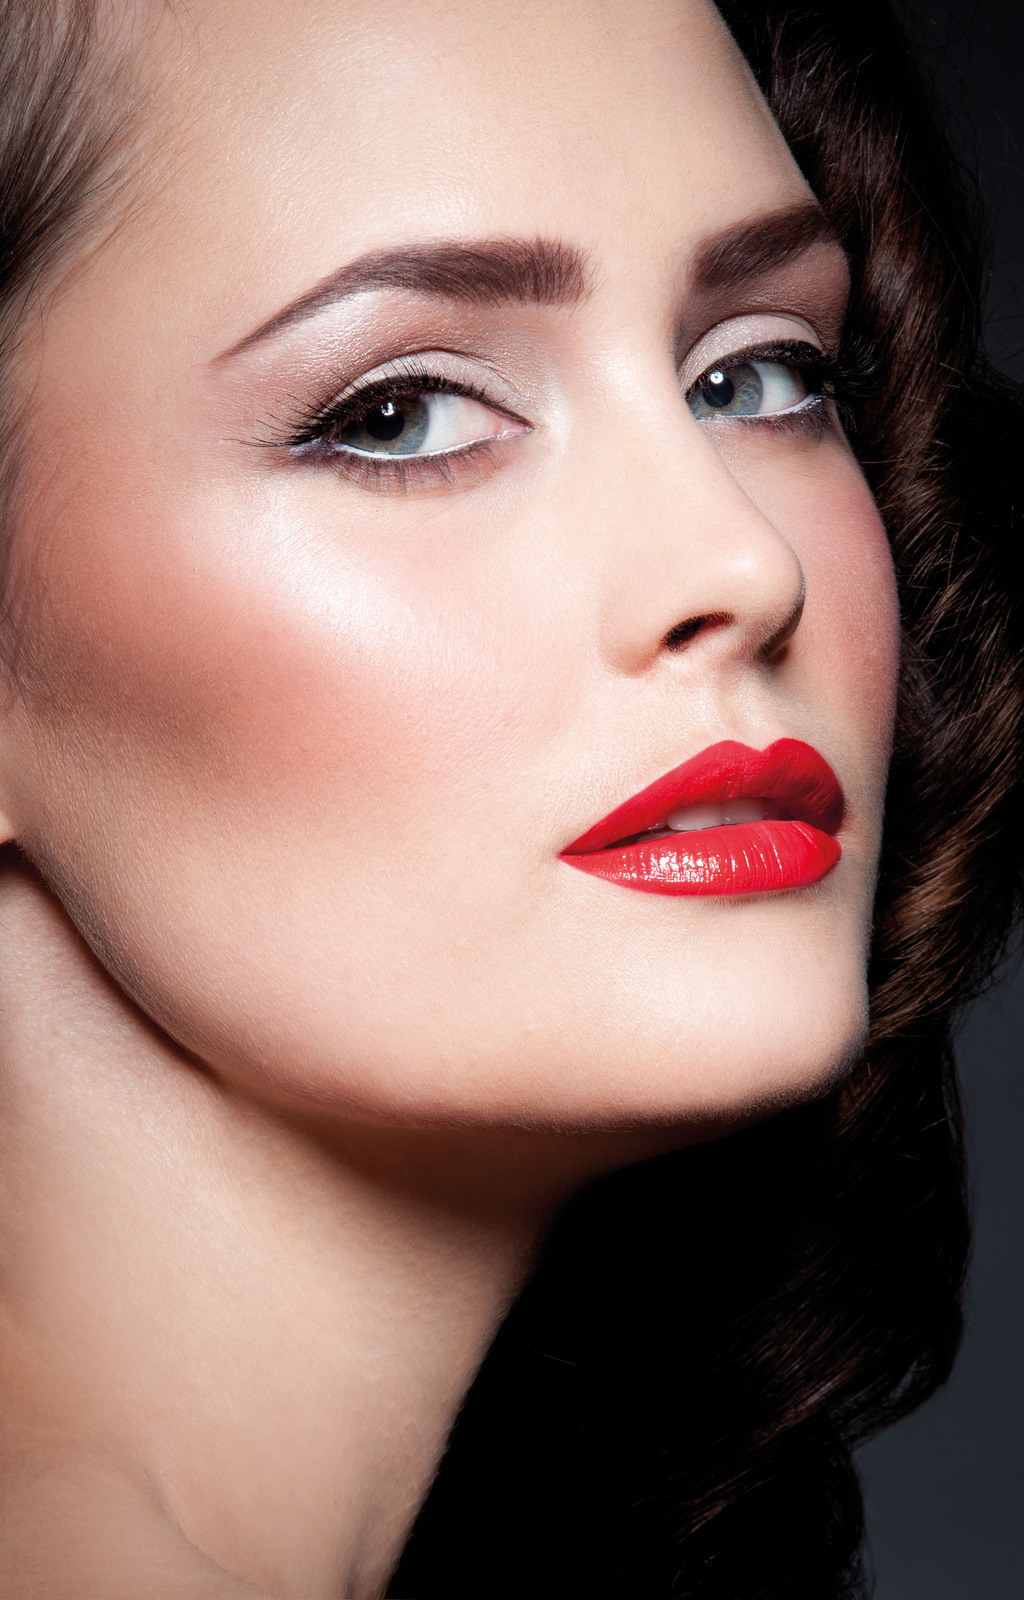 Make Up Fashion And 50 Shades Of Pink: Ava Gardner · Extract From Jemma Kidd Make-Up Secrets By